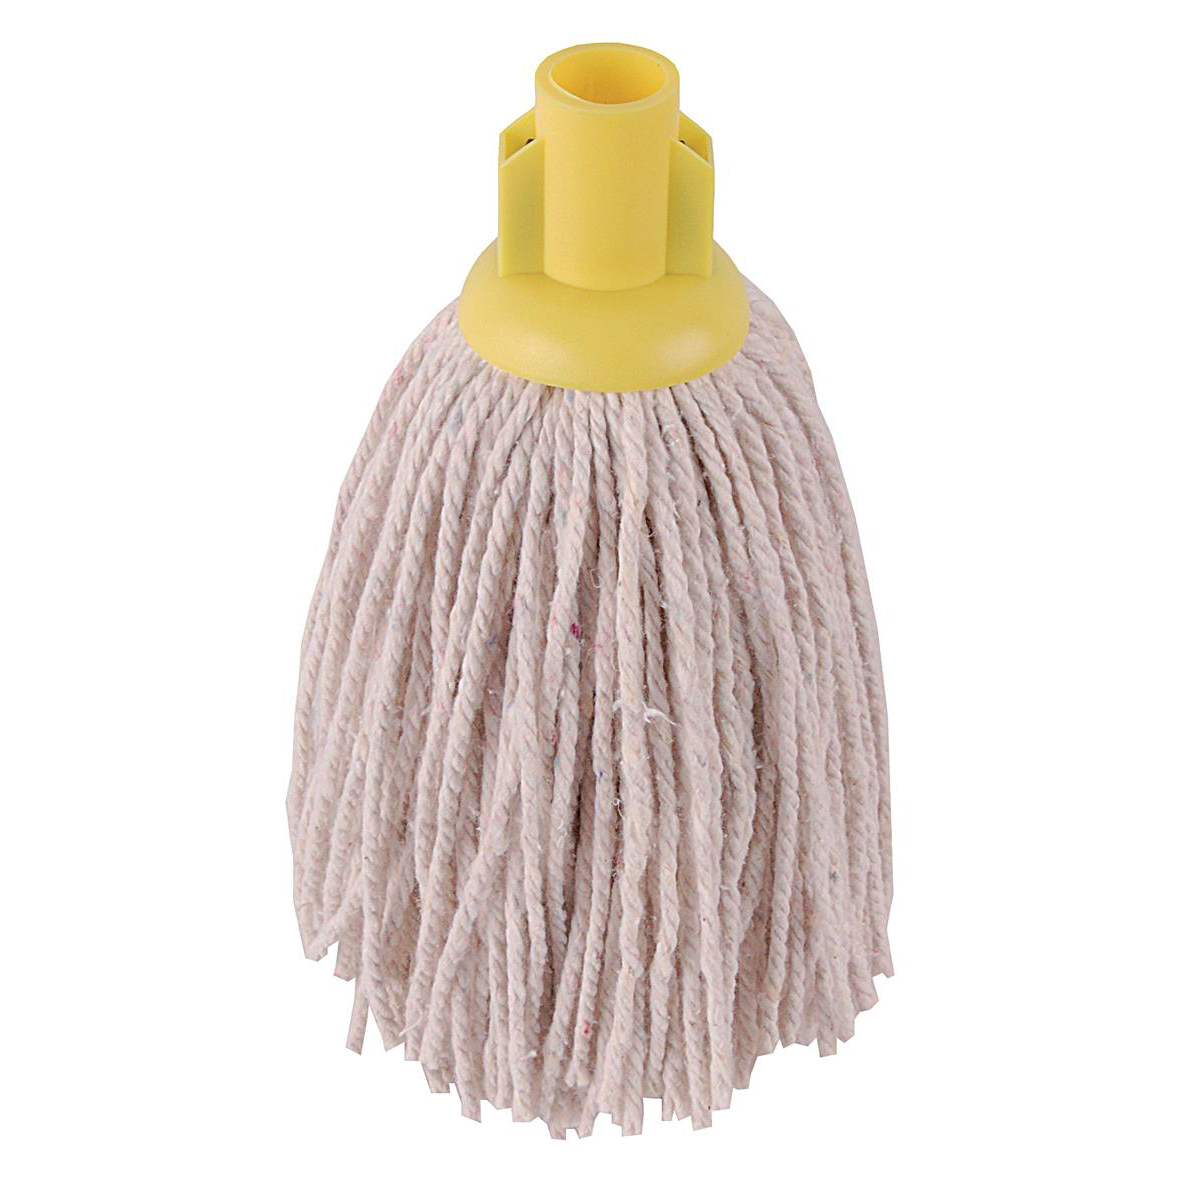 Robert Scott & Sons PY Socket Mop for Smooth Surfaces 12oz Yellow Ref 101870YELLOW [Pack 10]